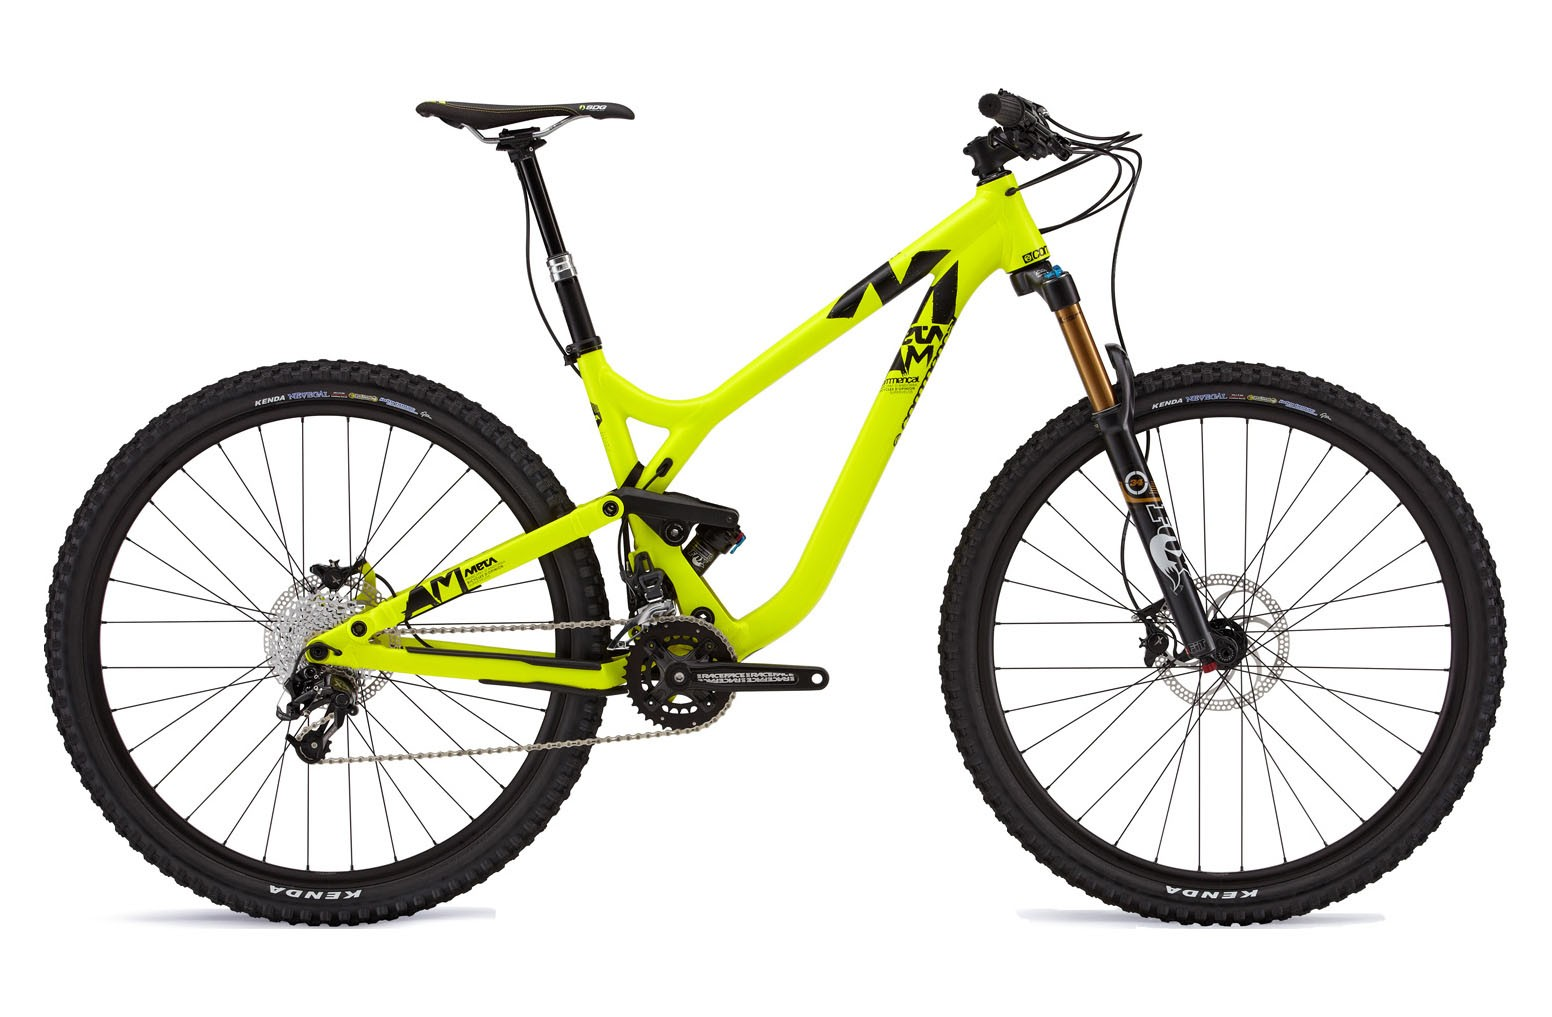 Горный велосипед Commencal Meta AM 1 29 (2013)